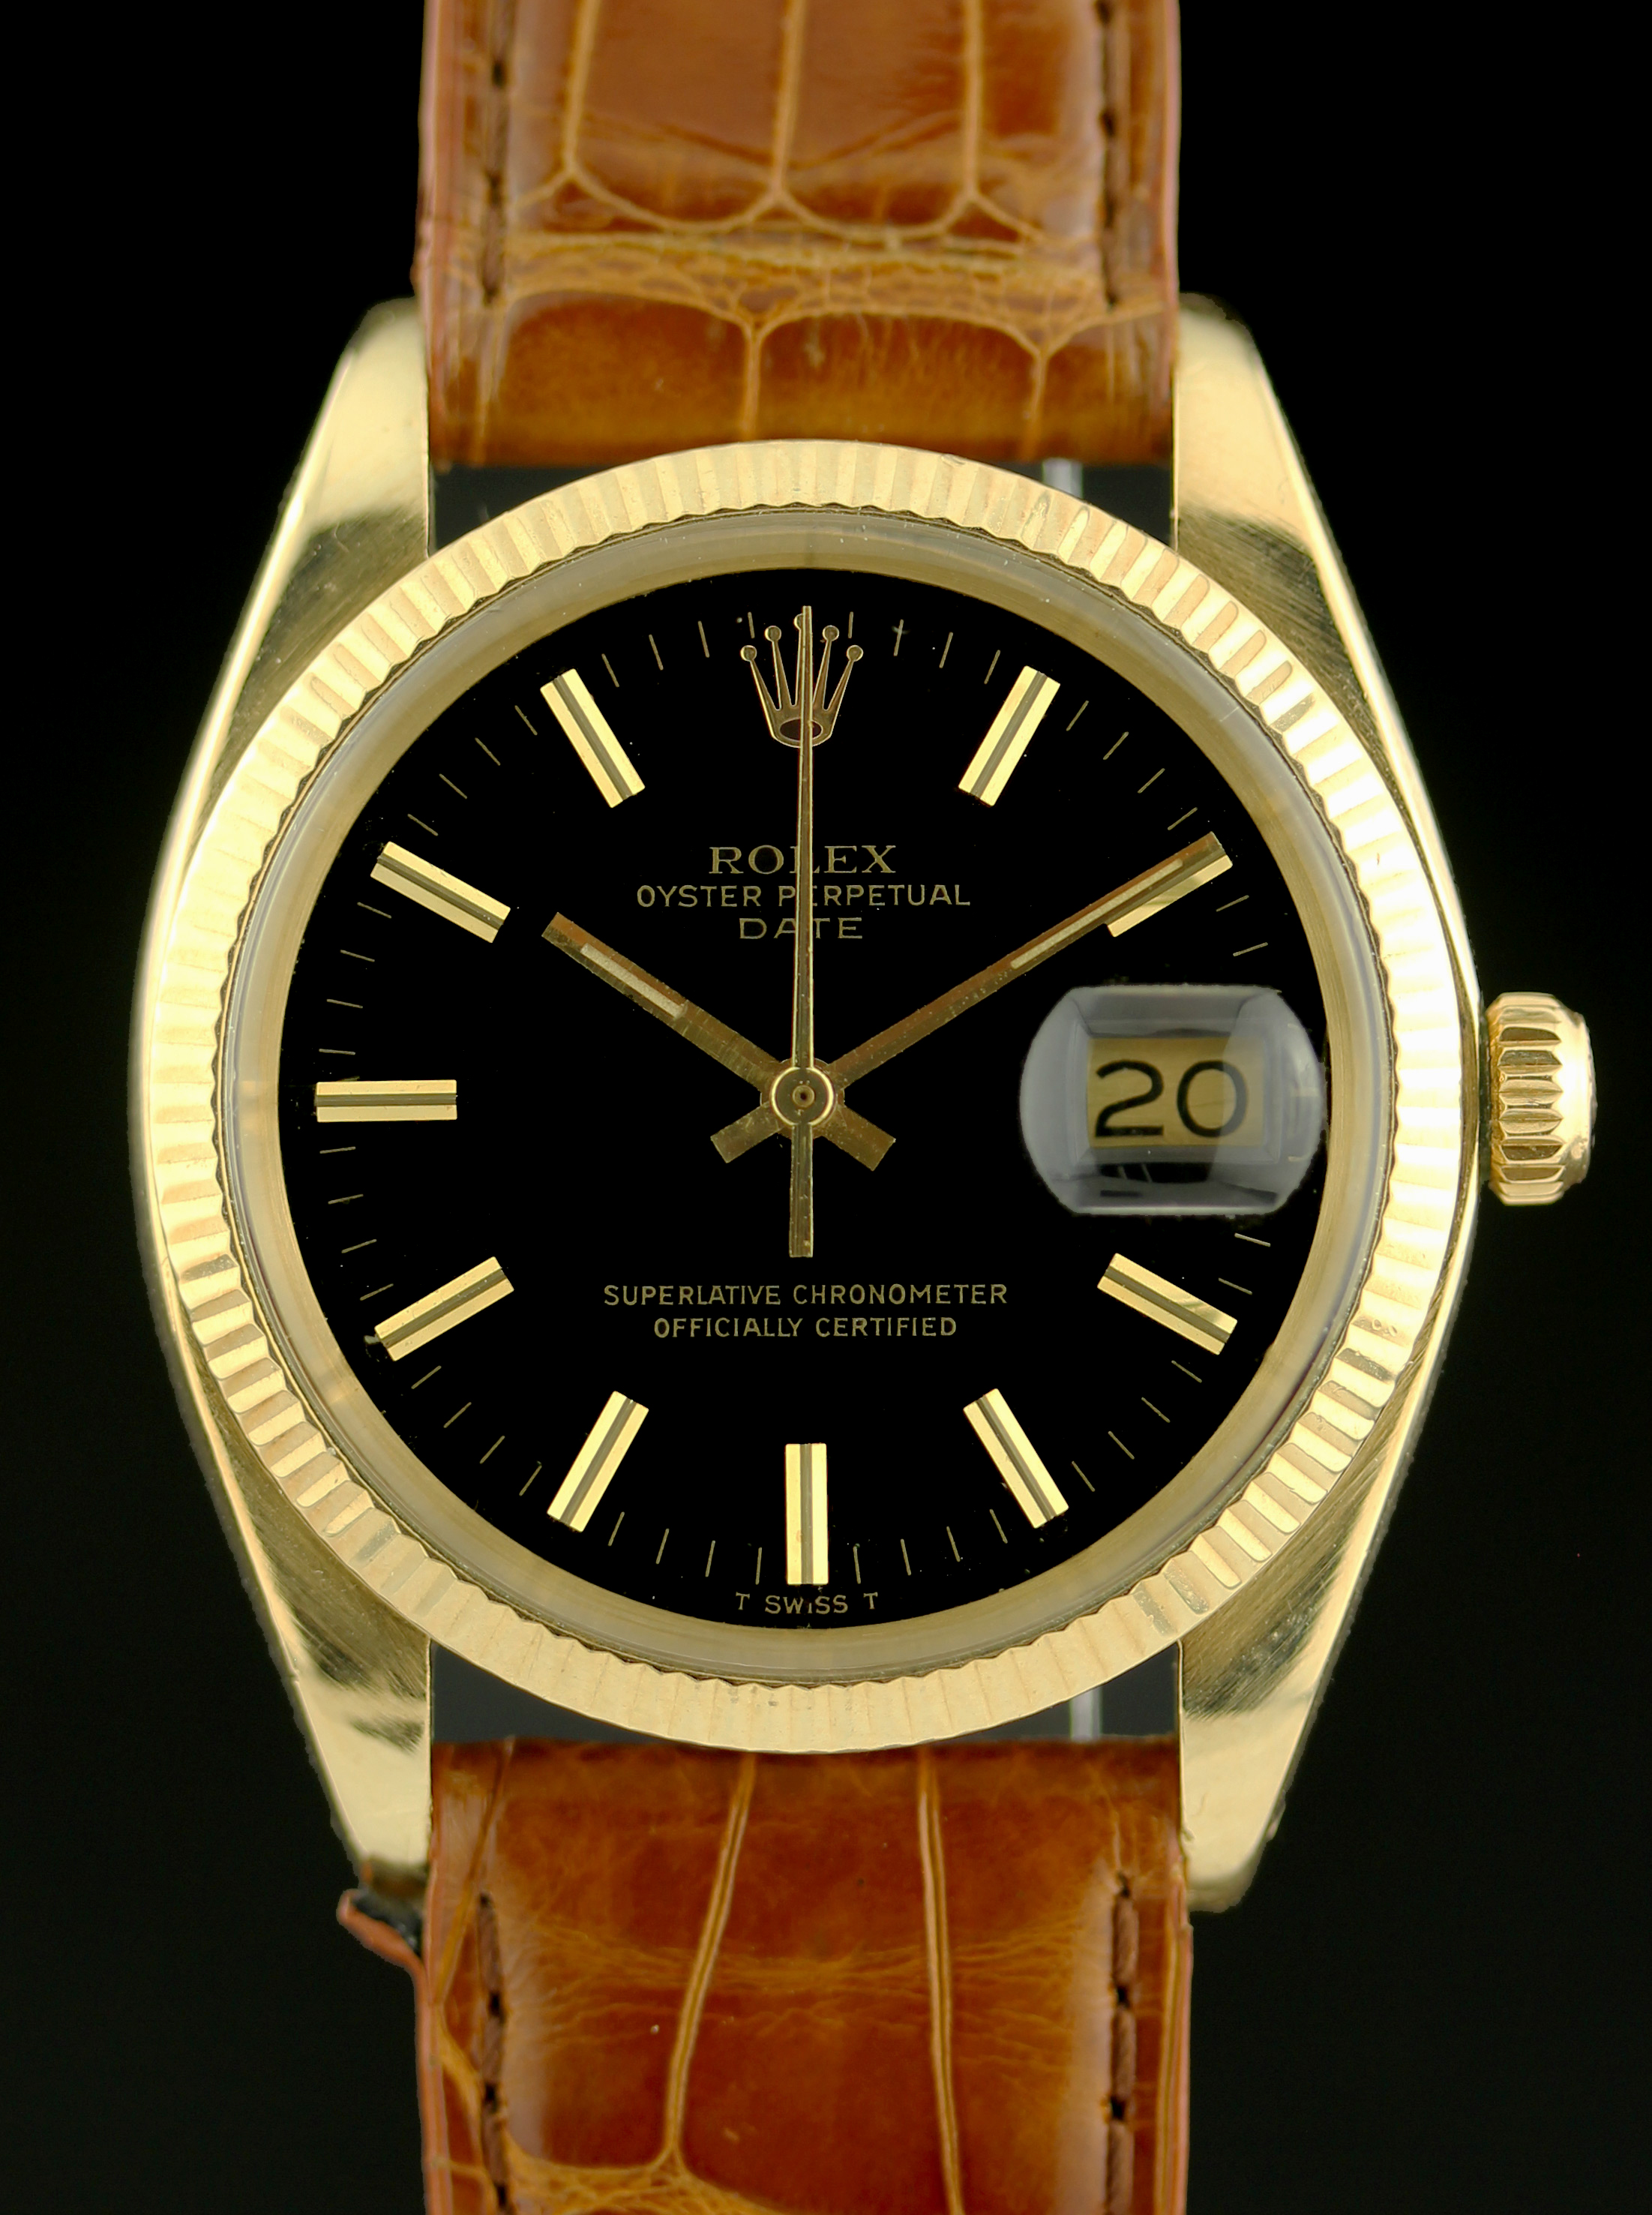 Rolex Date in gold with rare black dial